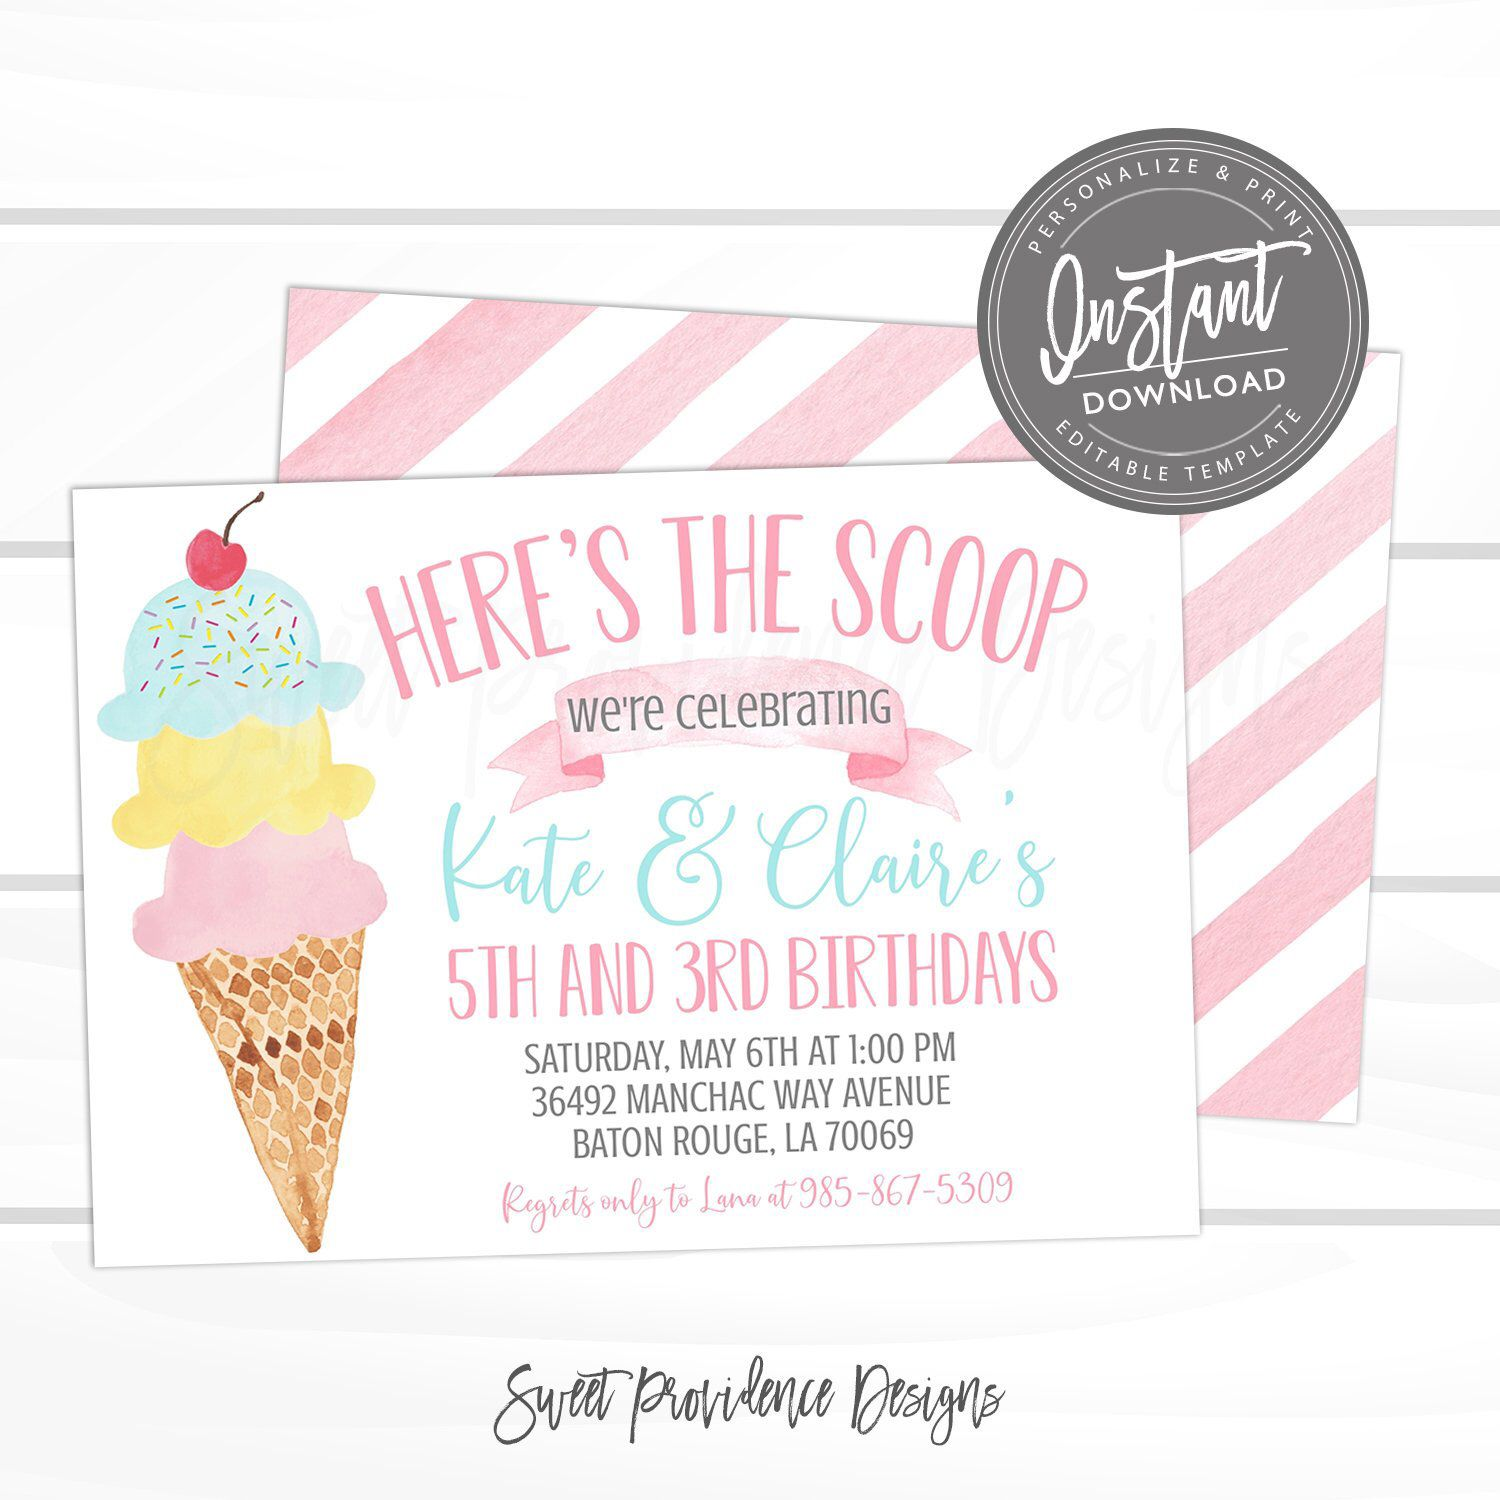 Ice Cream Sibling Birthday Party Invitation, Joint Birthday, Pink Ice Cream Social Invite, Editable Birthday template, Instant Access #icecreambirthdayparty